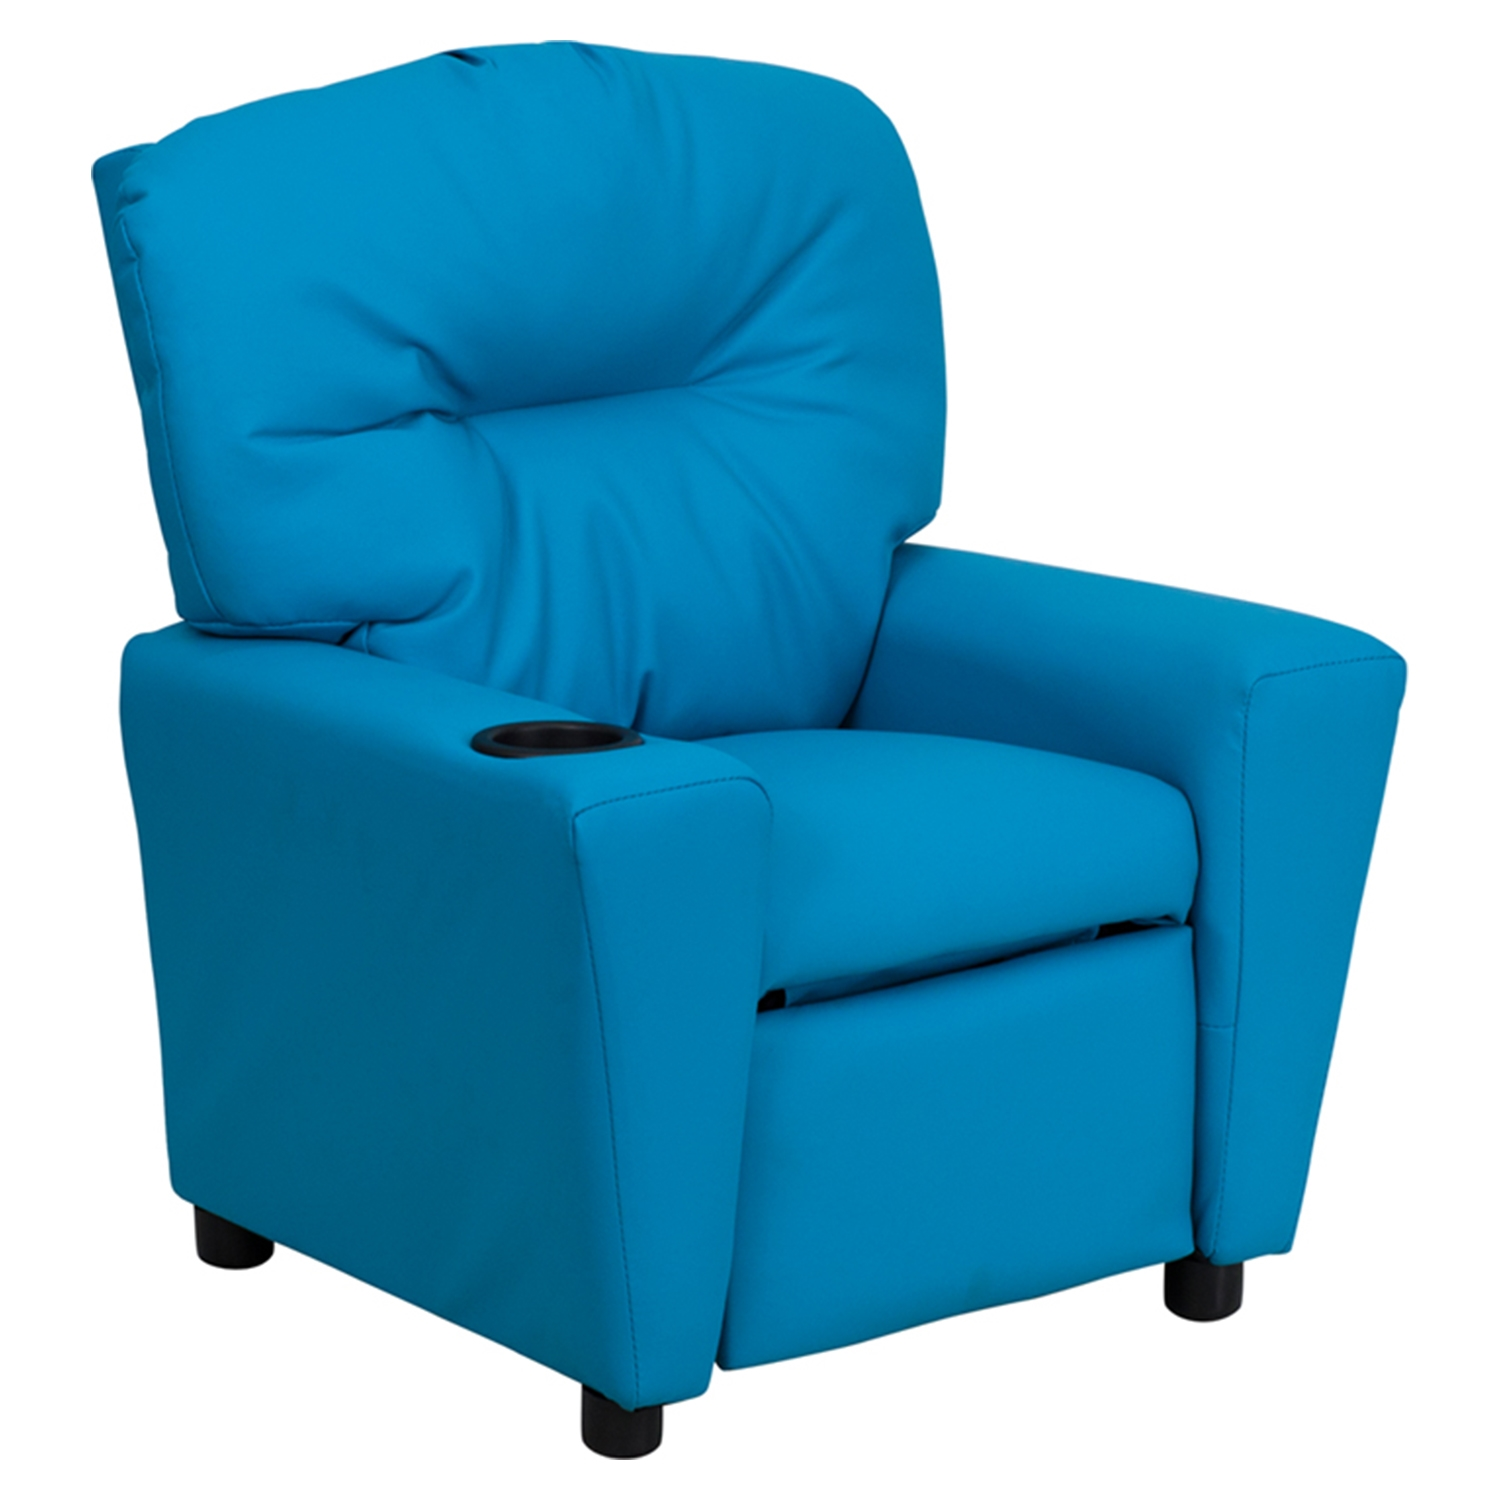 Upholstered Kids Recliner Chair   Cup Holder, Turquoise   FLSH BT 7950  ...